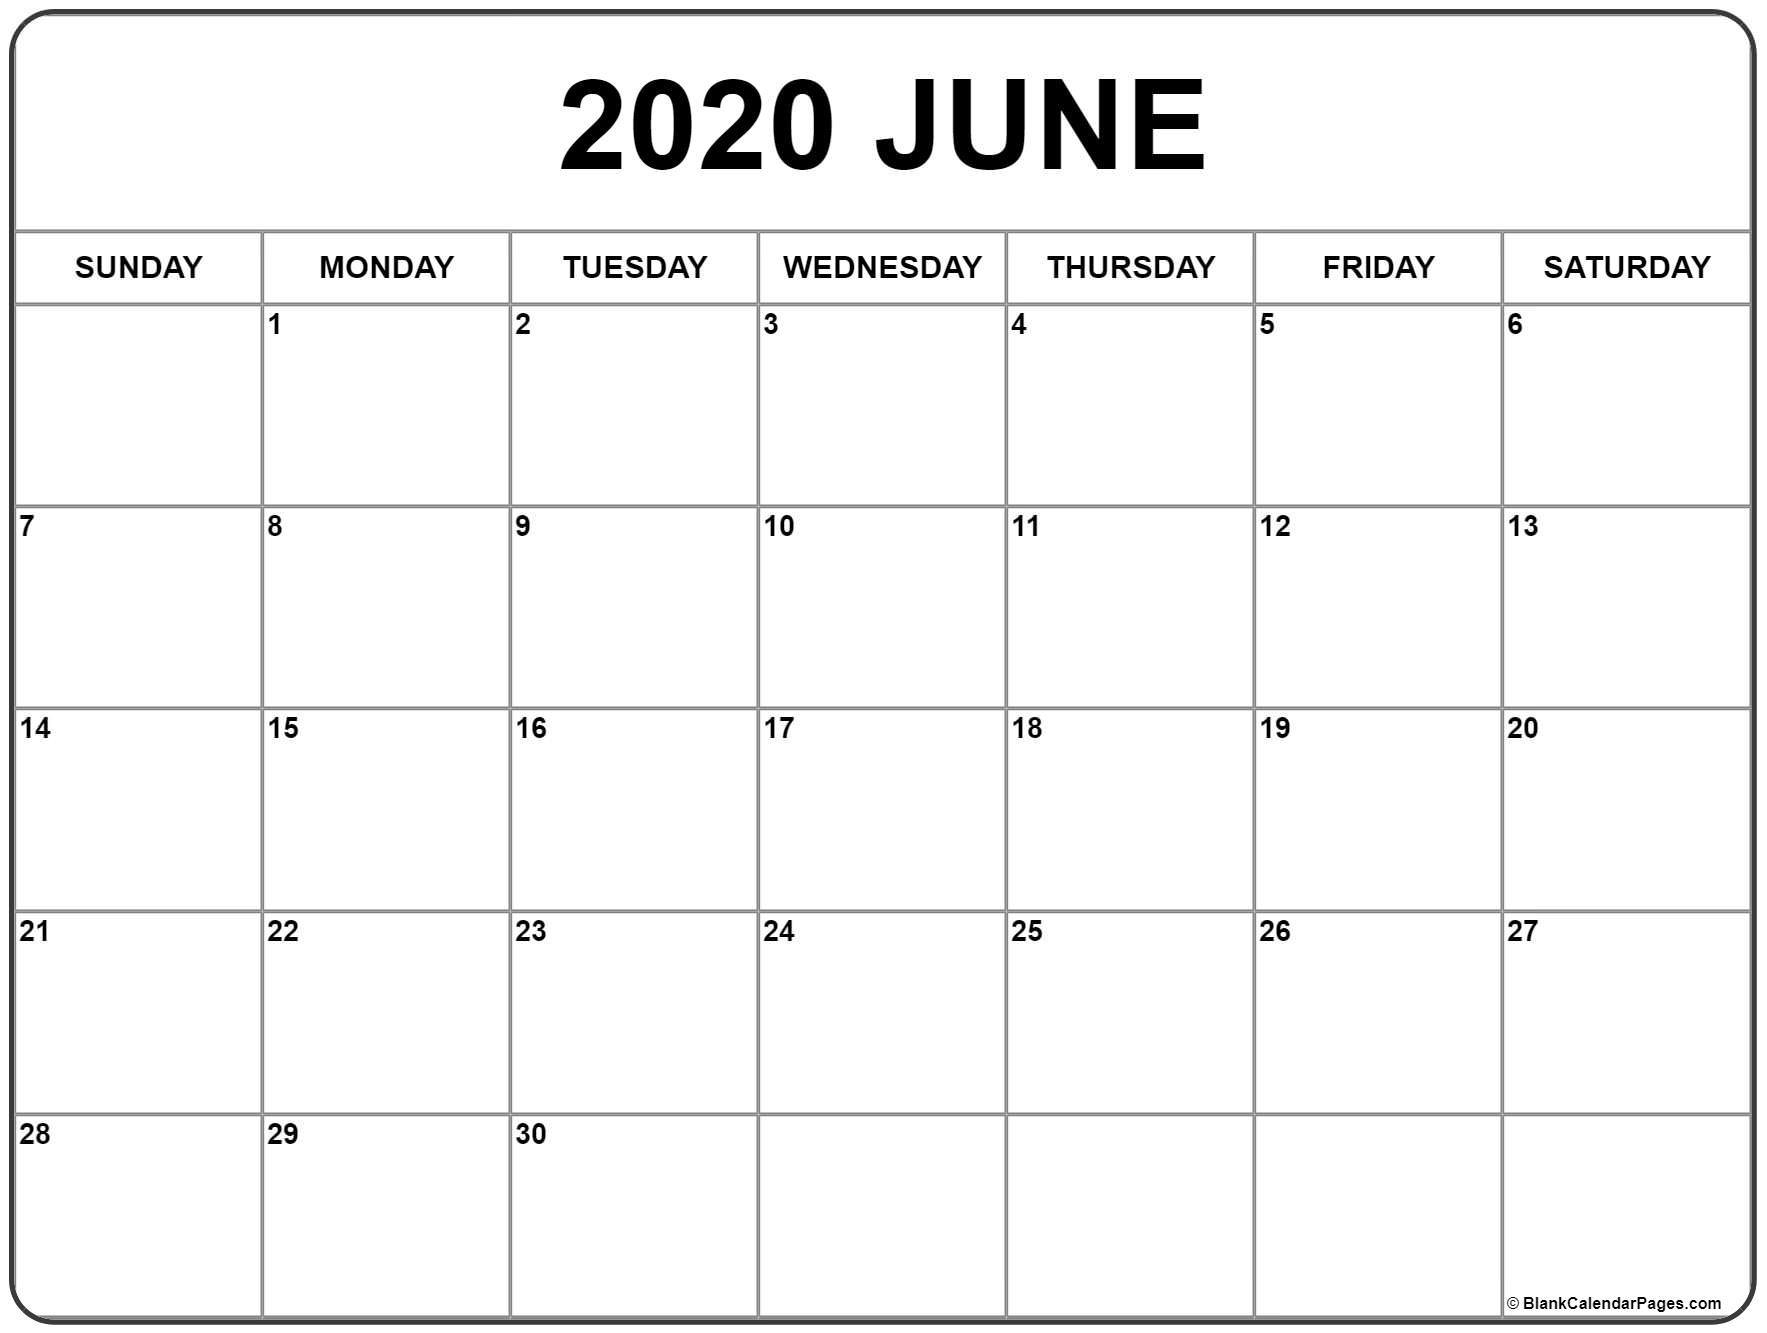 June 2020 Calendar | Free Printable Monthly Calendars-Printable Calendar 2020 Monthly June July